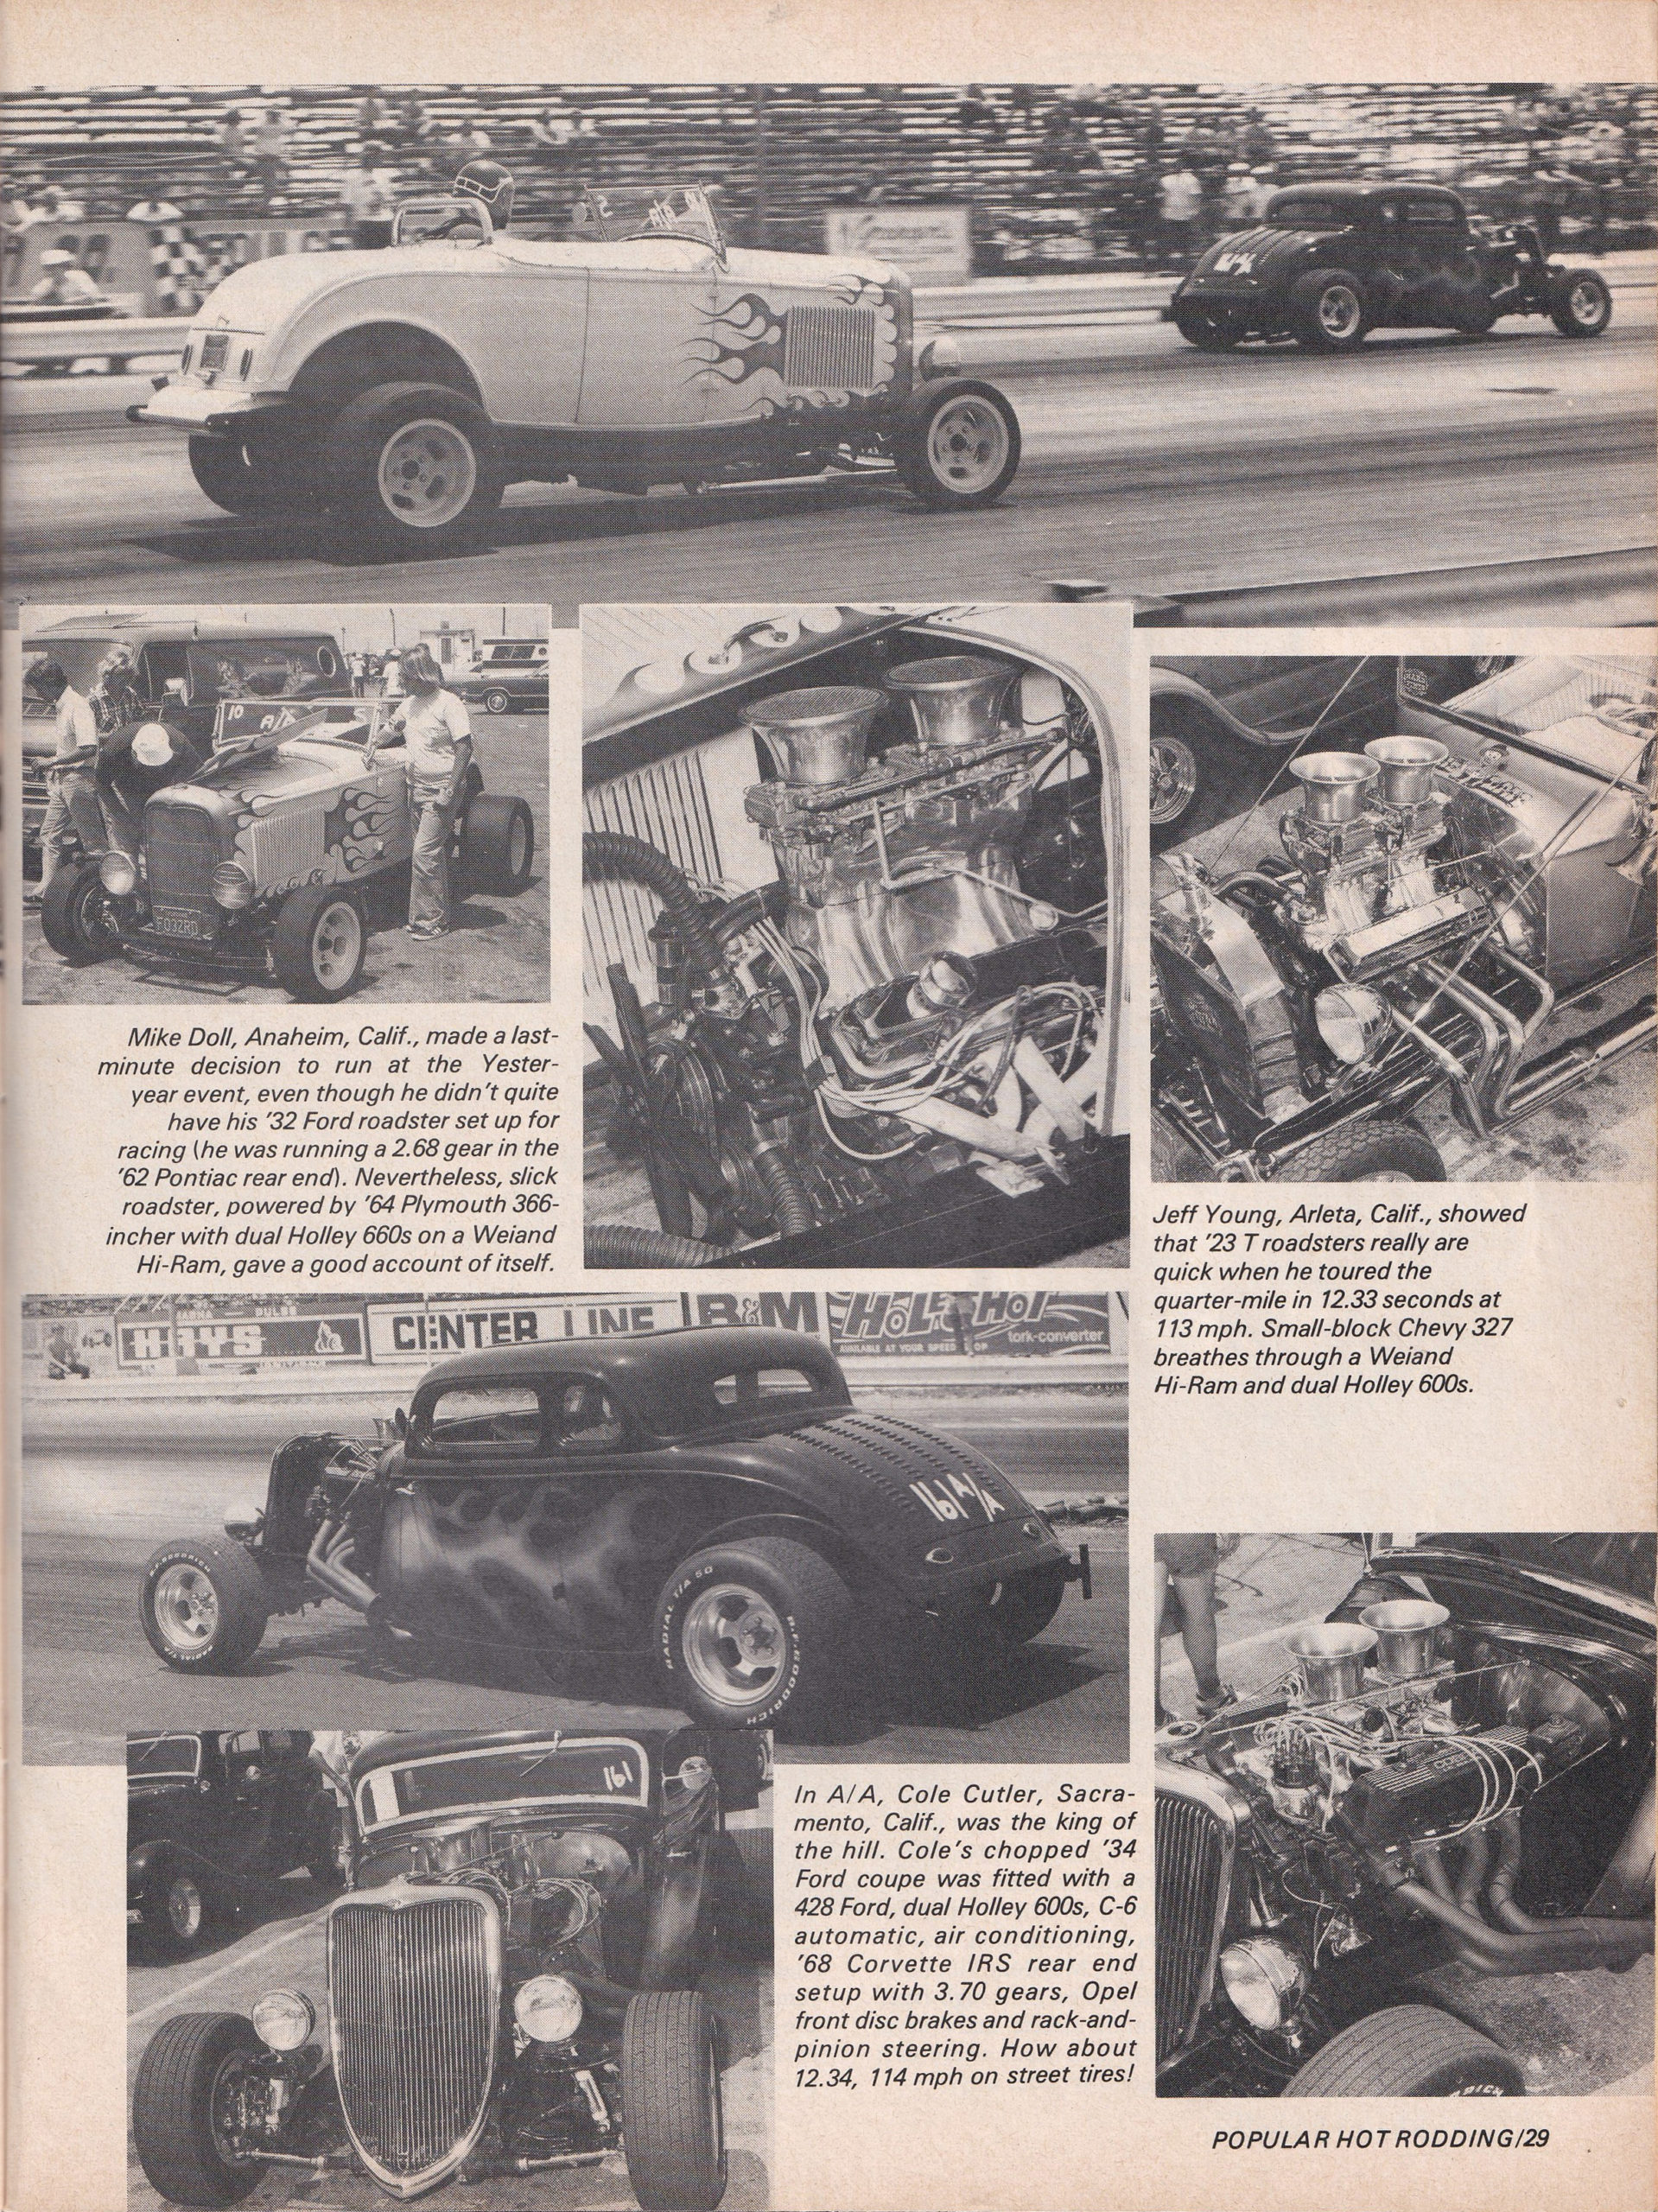 Street Rod Drag Race section from October 1975 issue of Popular Hot Rodding, page 4.